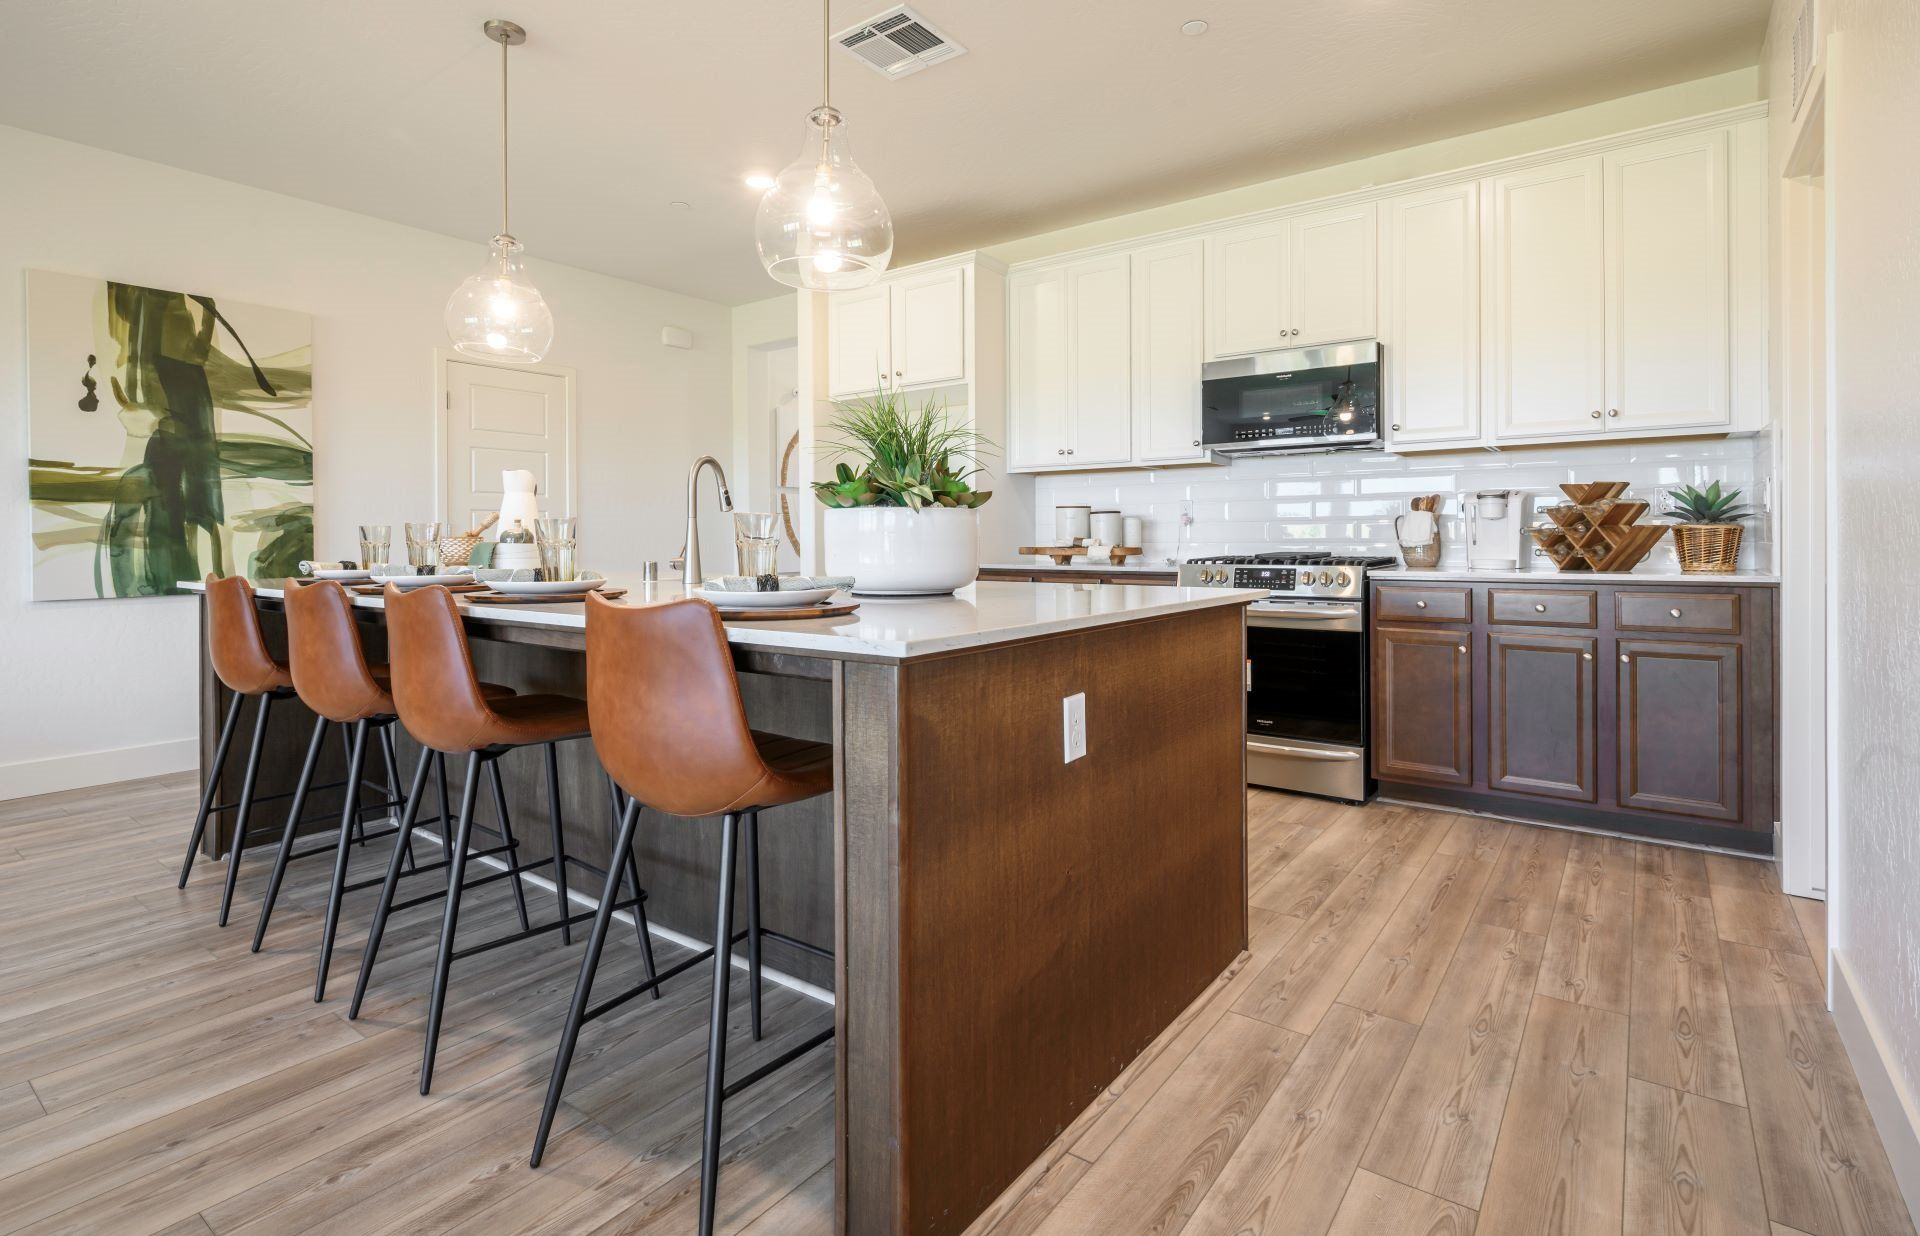 Kitchen featured in the Aria By Lennar in Fresno, CA